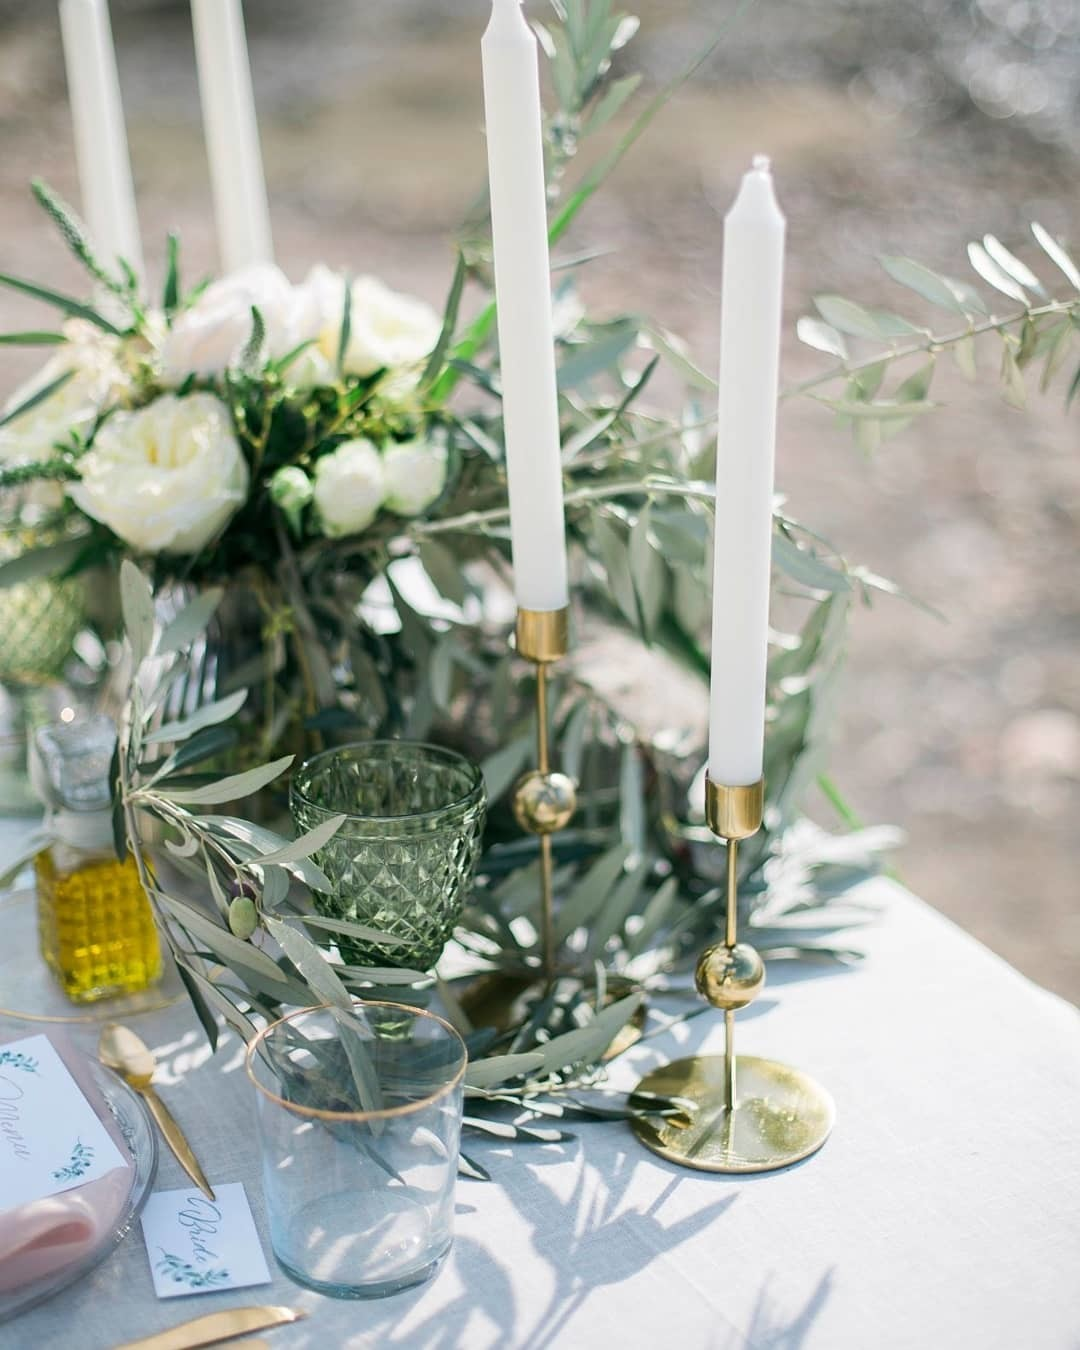 ▪If you need some inspiration for your destination wedding in Greece we suggest olives, white flowers and gold details. The dream